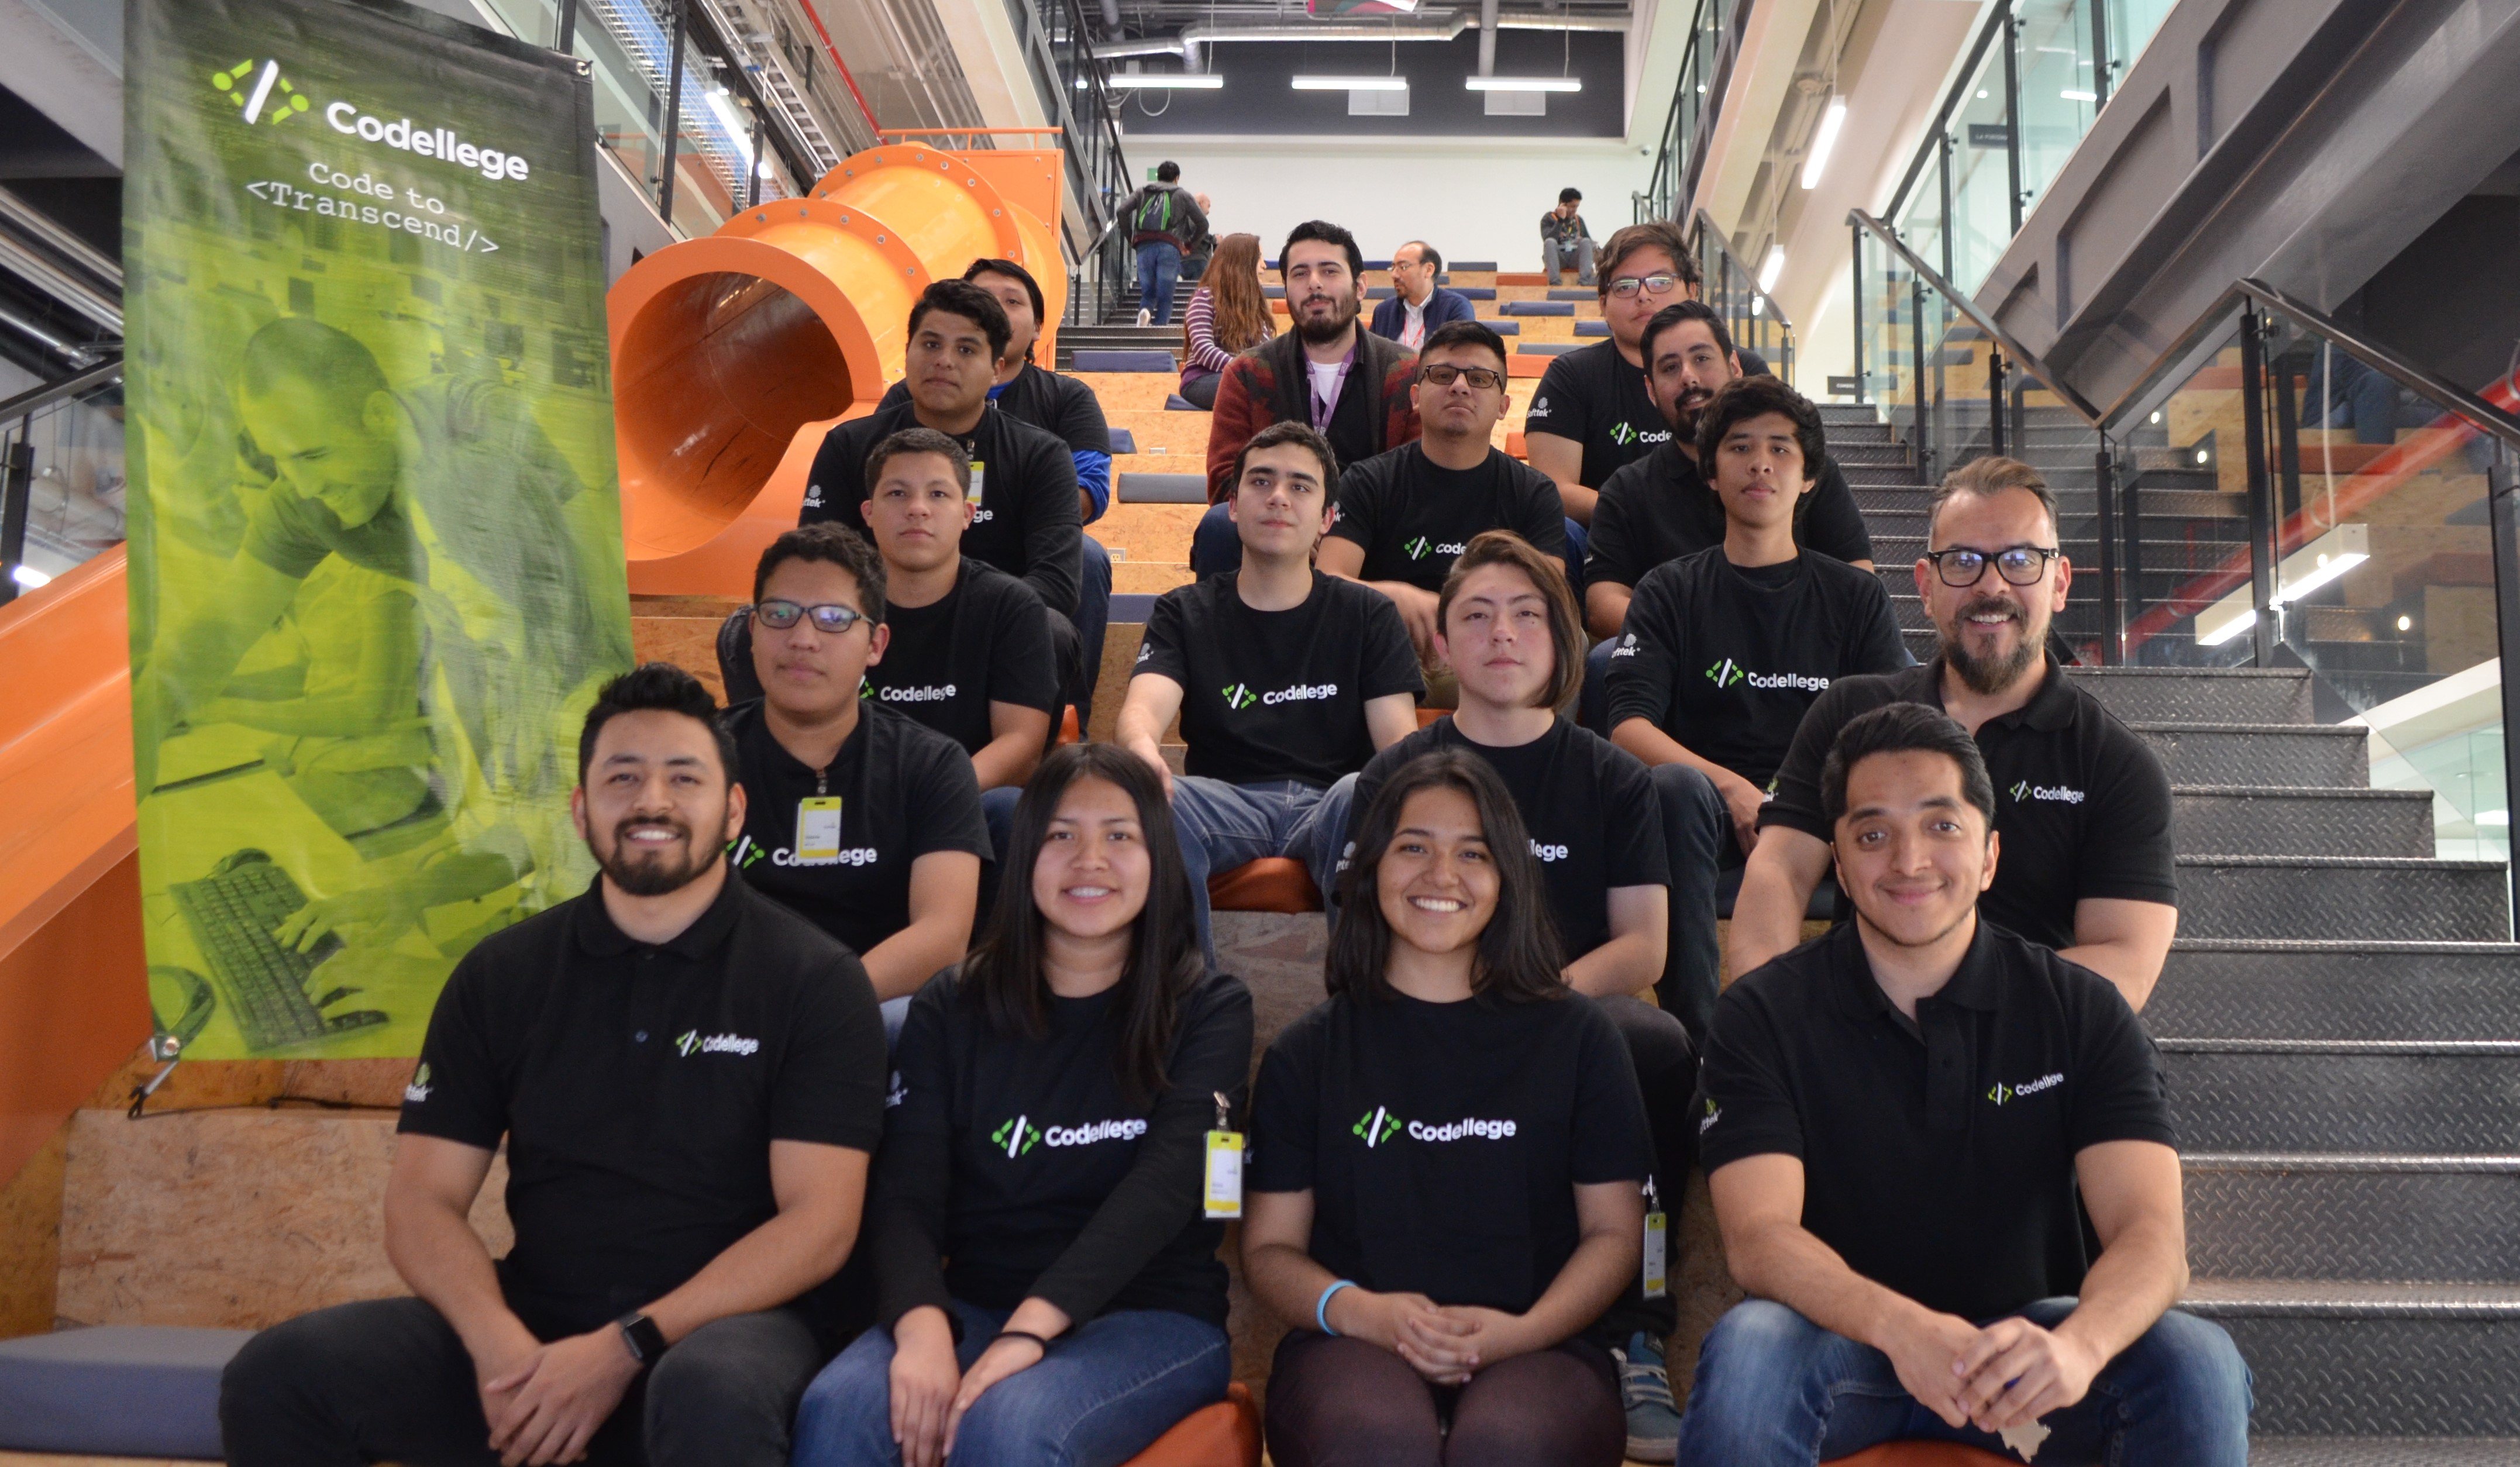 36 years later and the entrepreneurial spirit carries on: Codellege